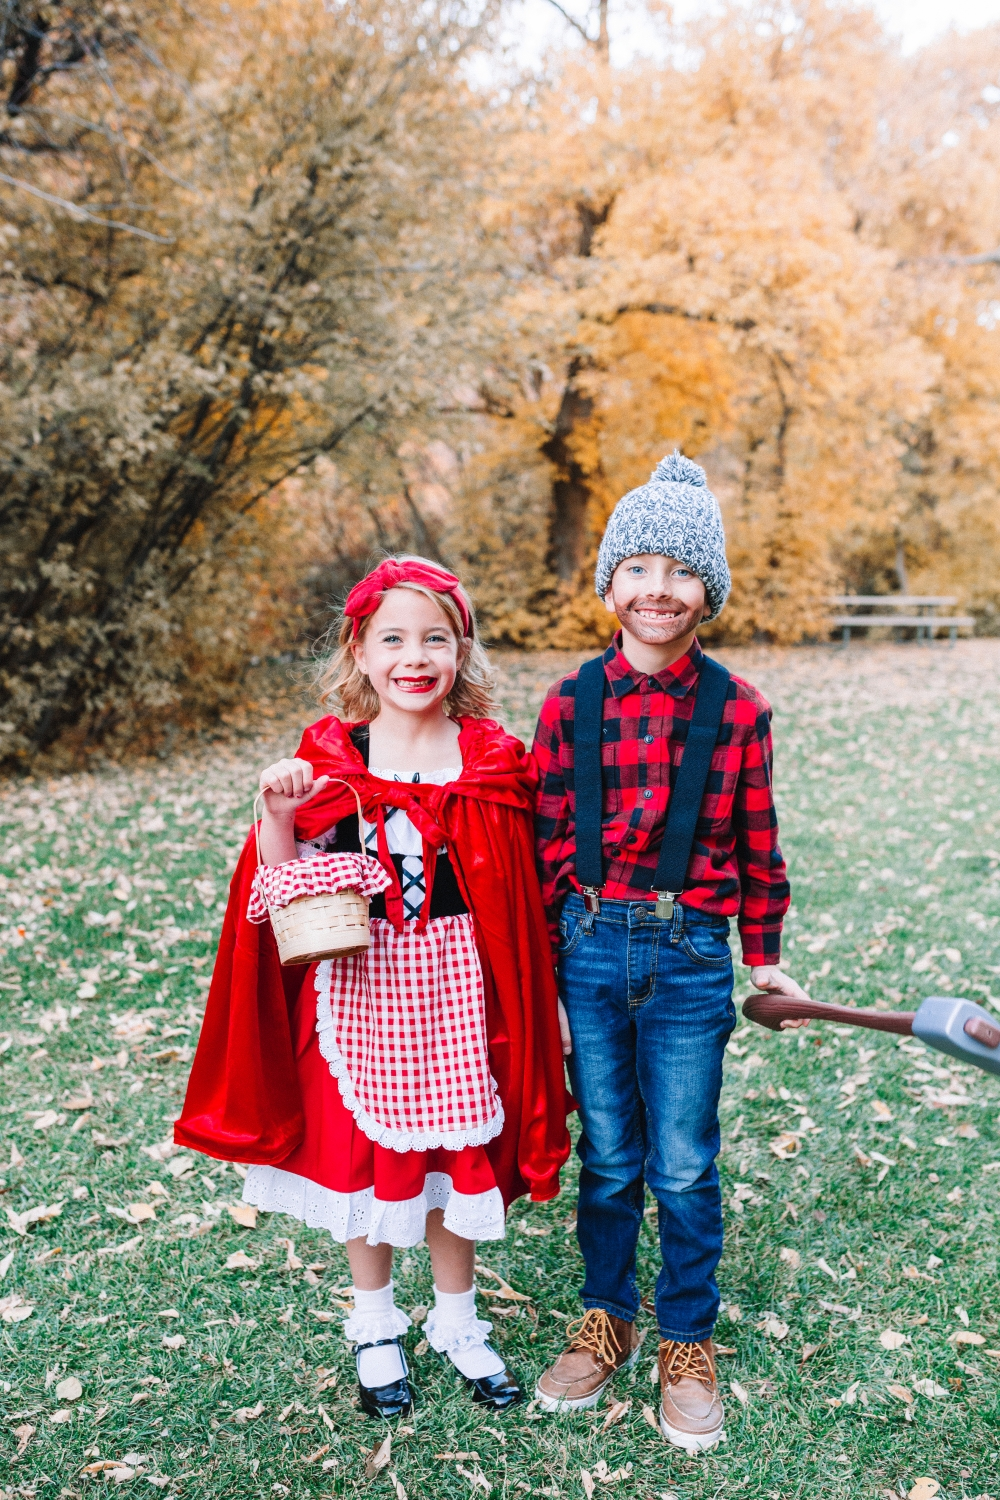 Little Red Riding Hood and the Wood cutter